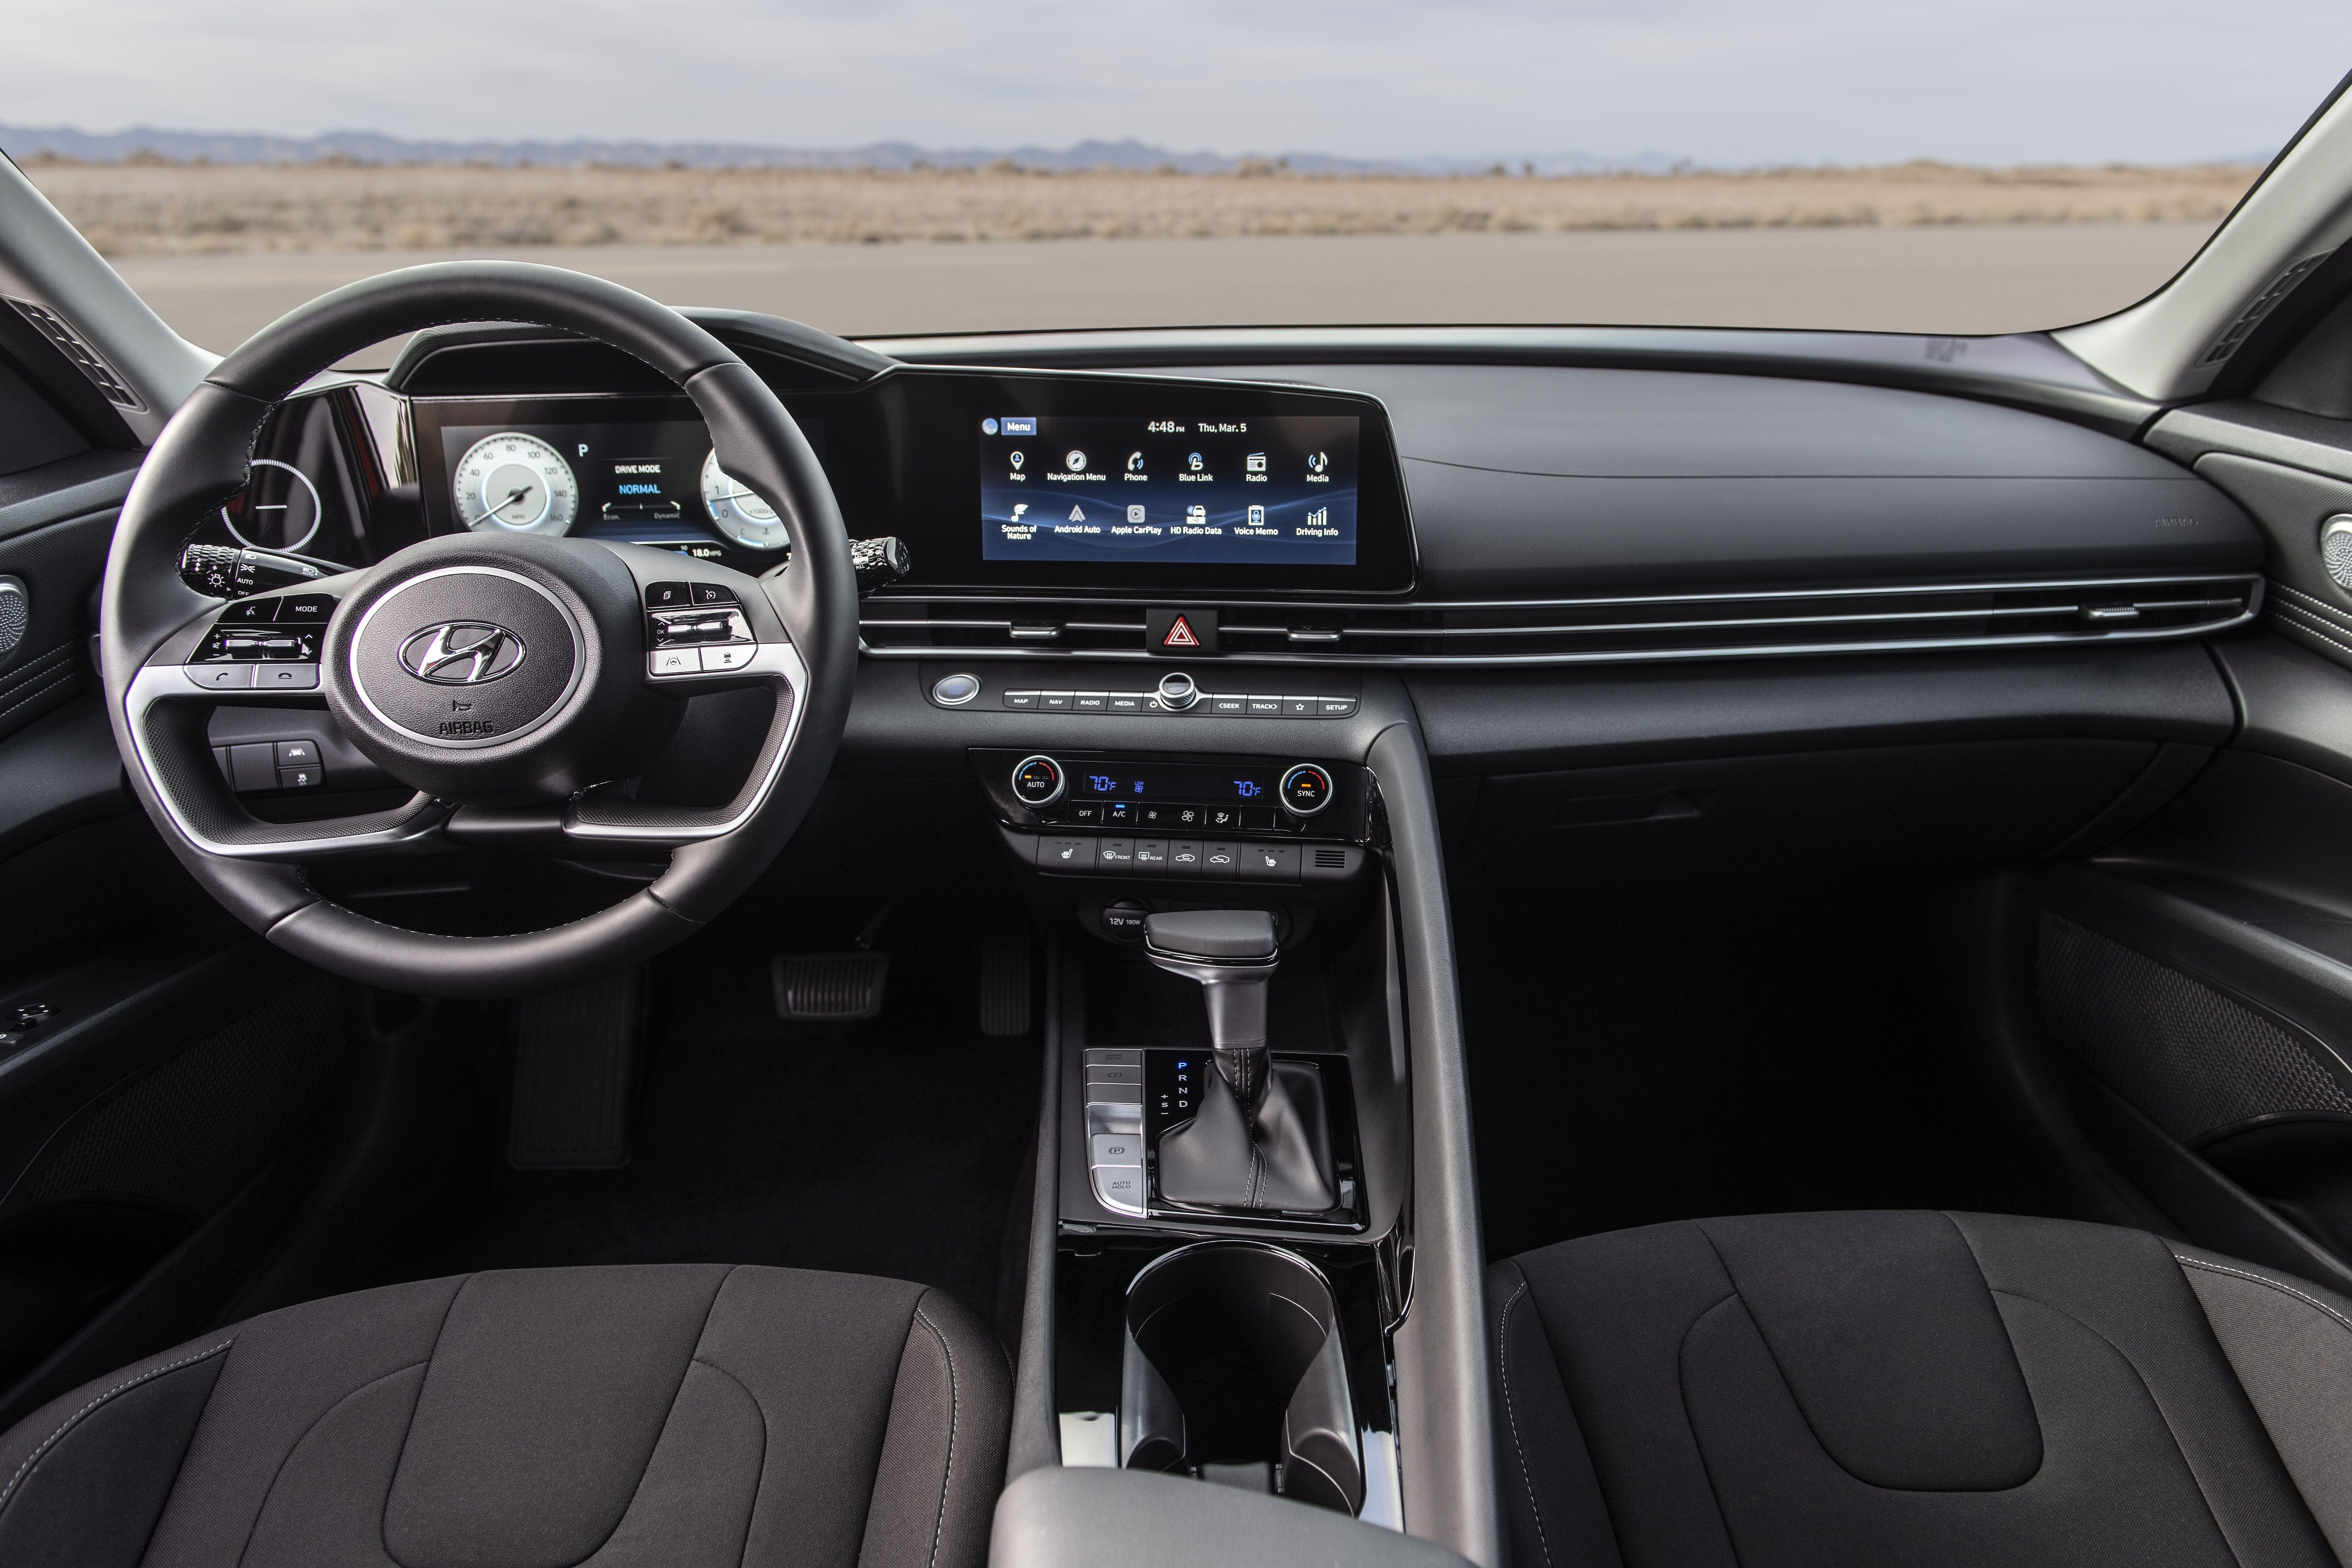 In the 2021 Elantra's cabin, the designer has adopted the idea of 'immersive cocoon' which 'encloses the driver like an airplane cockpit'. The cabin is equipped with a 10.25-inch digital sail instrument cluster and an optional 10.25-inch infotainment system. The latter supports wireless Android Auto and Apple CarPlay wireless which is the first for vehicles in this segment.